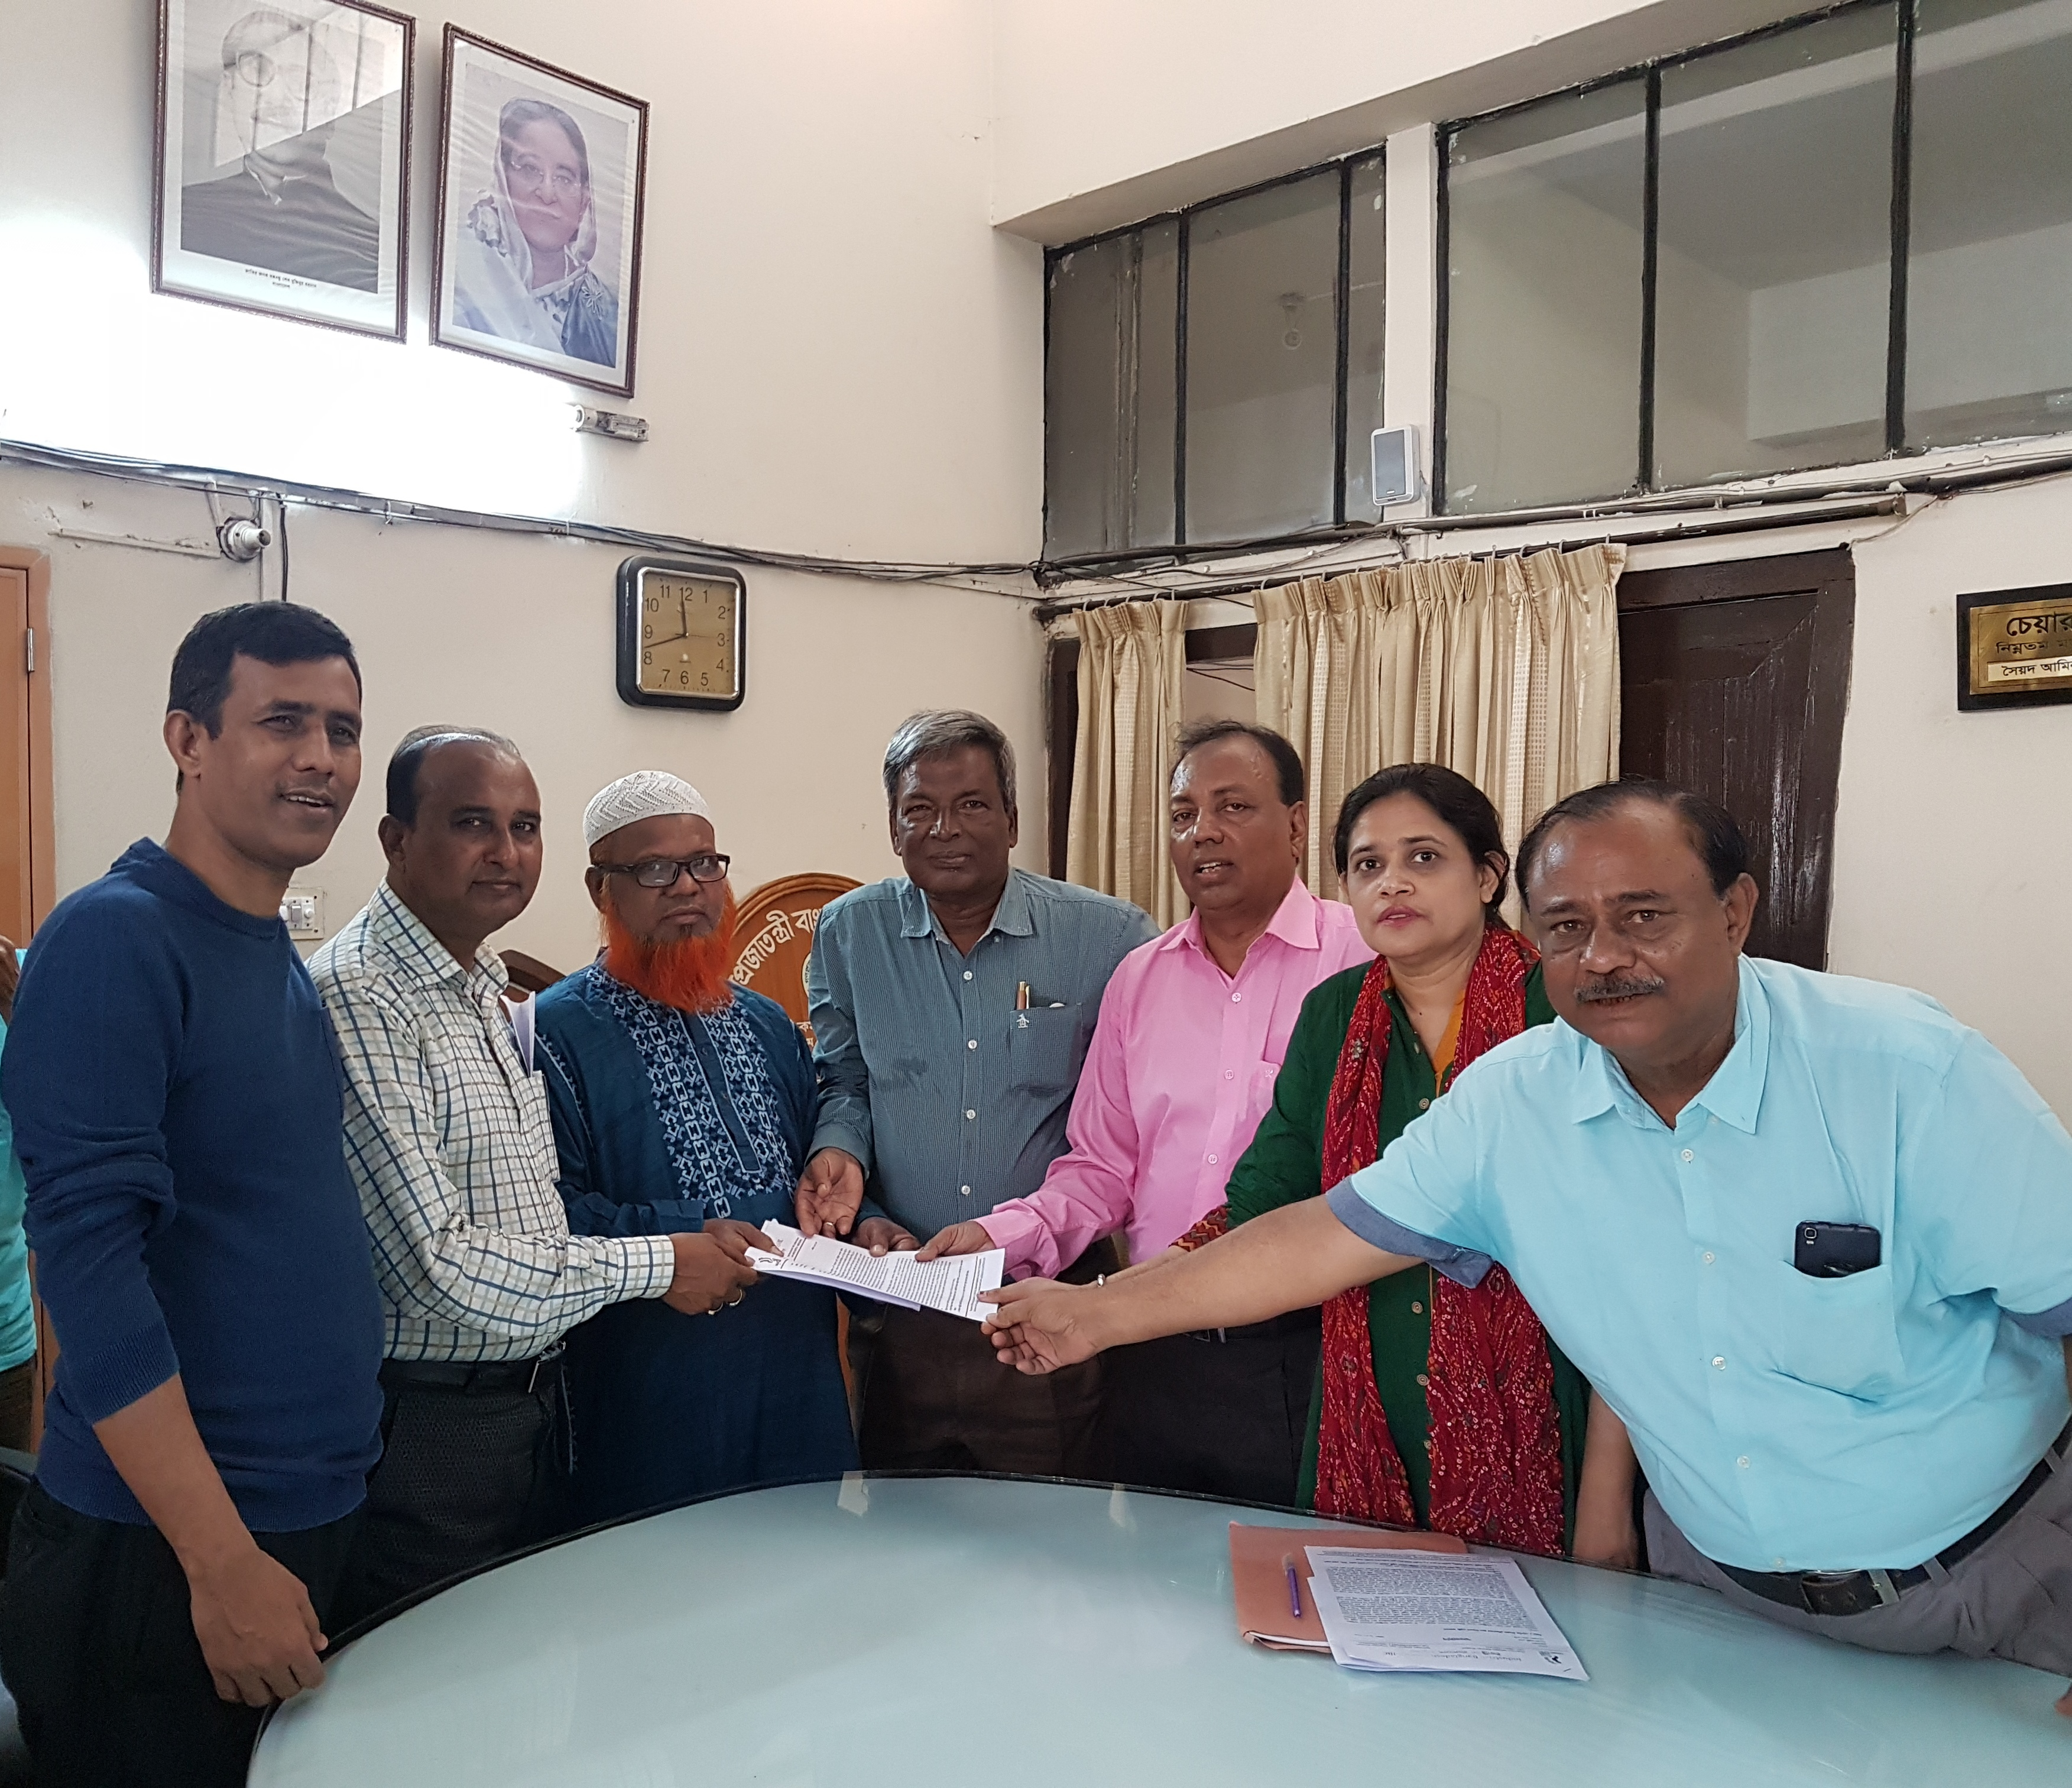 National Garment Workers Federation President handed over the memorandum to the lowest wage board on 28th February,2018